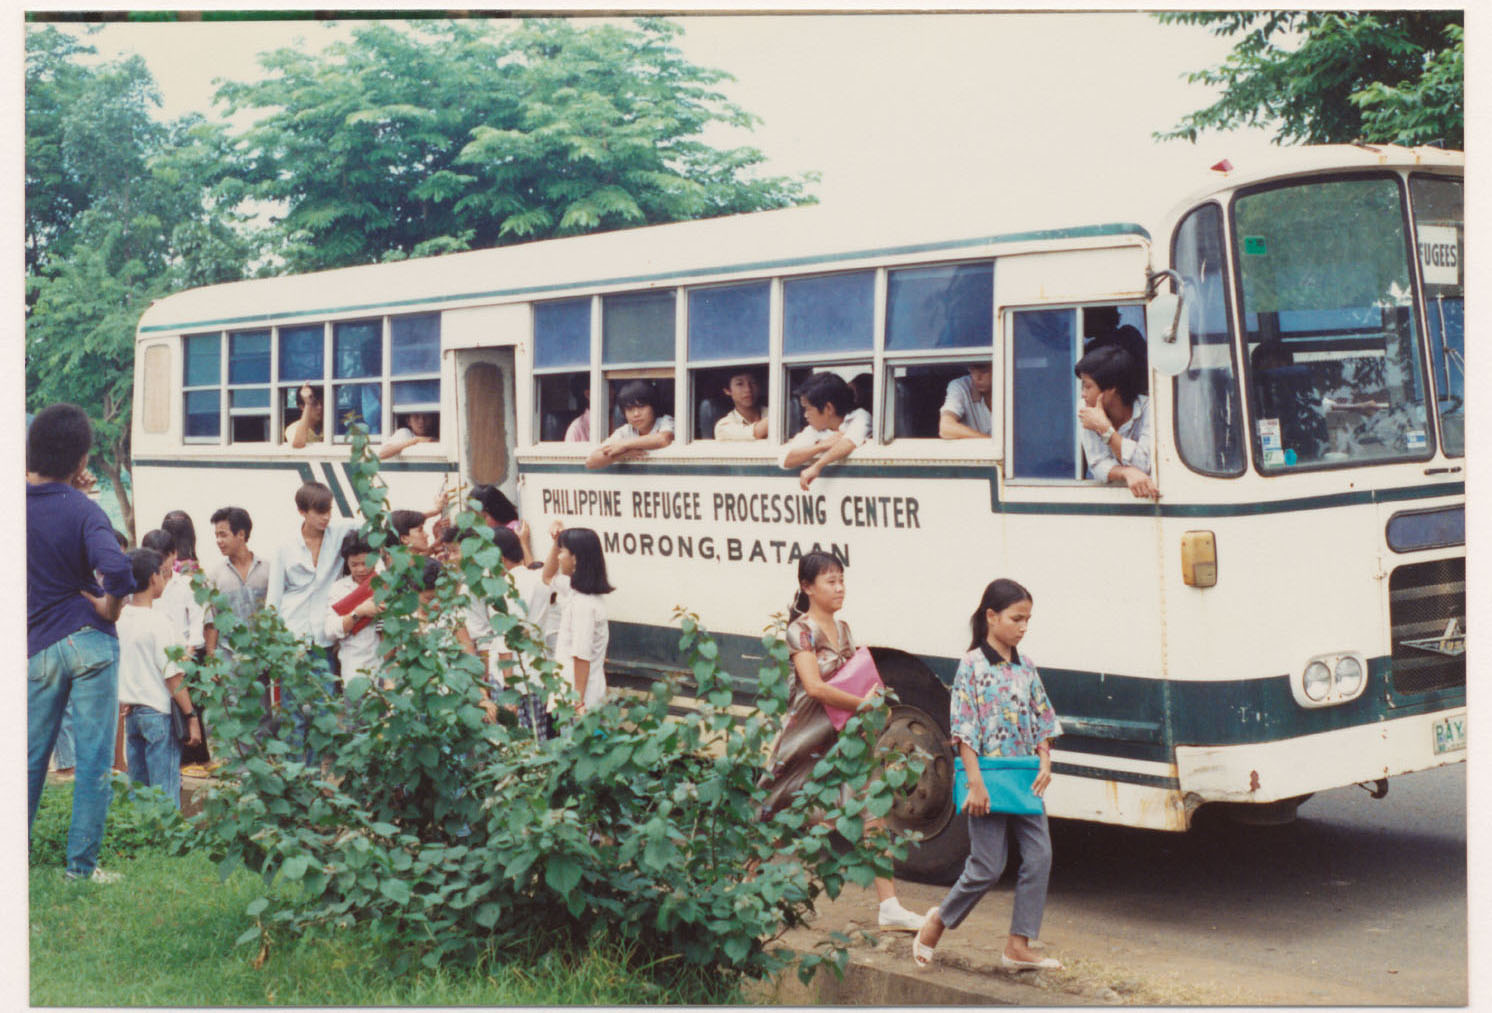 File:Philippine refugee processing center bus.jpg - Wikimedia Commons